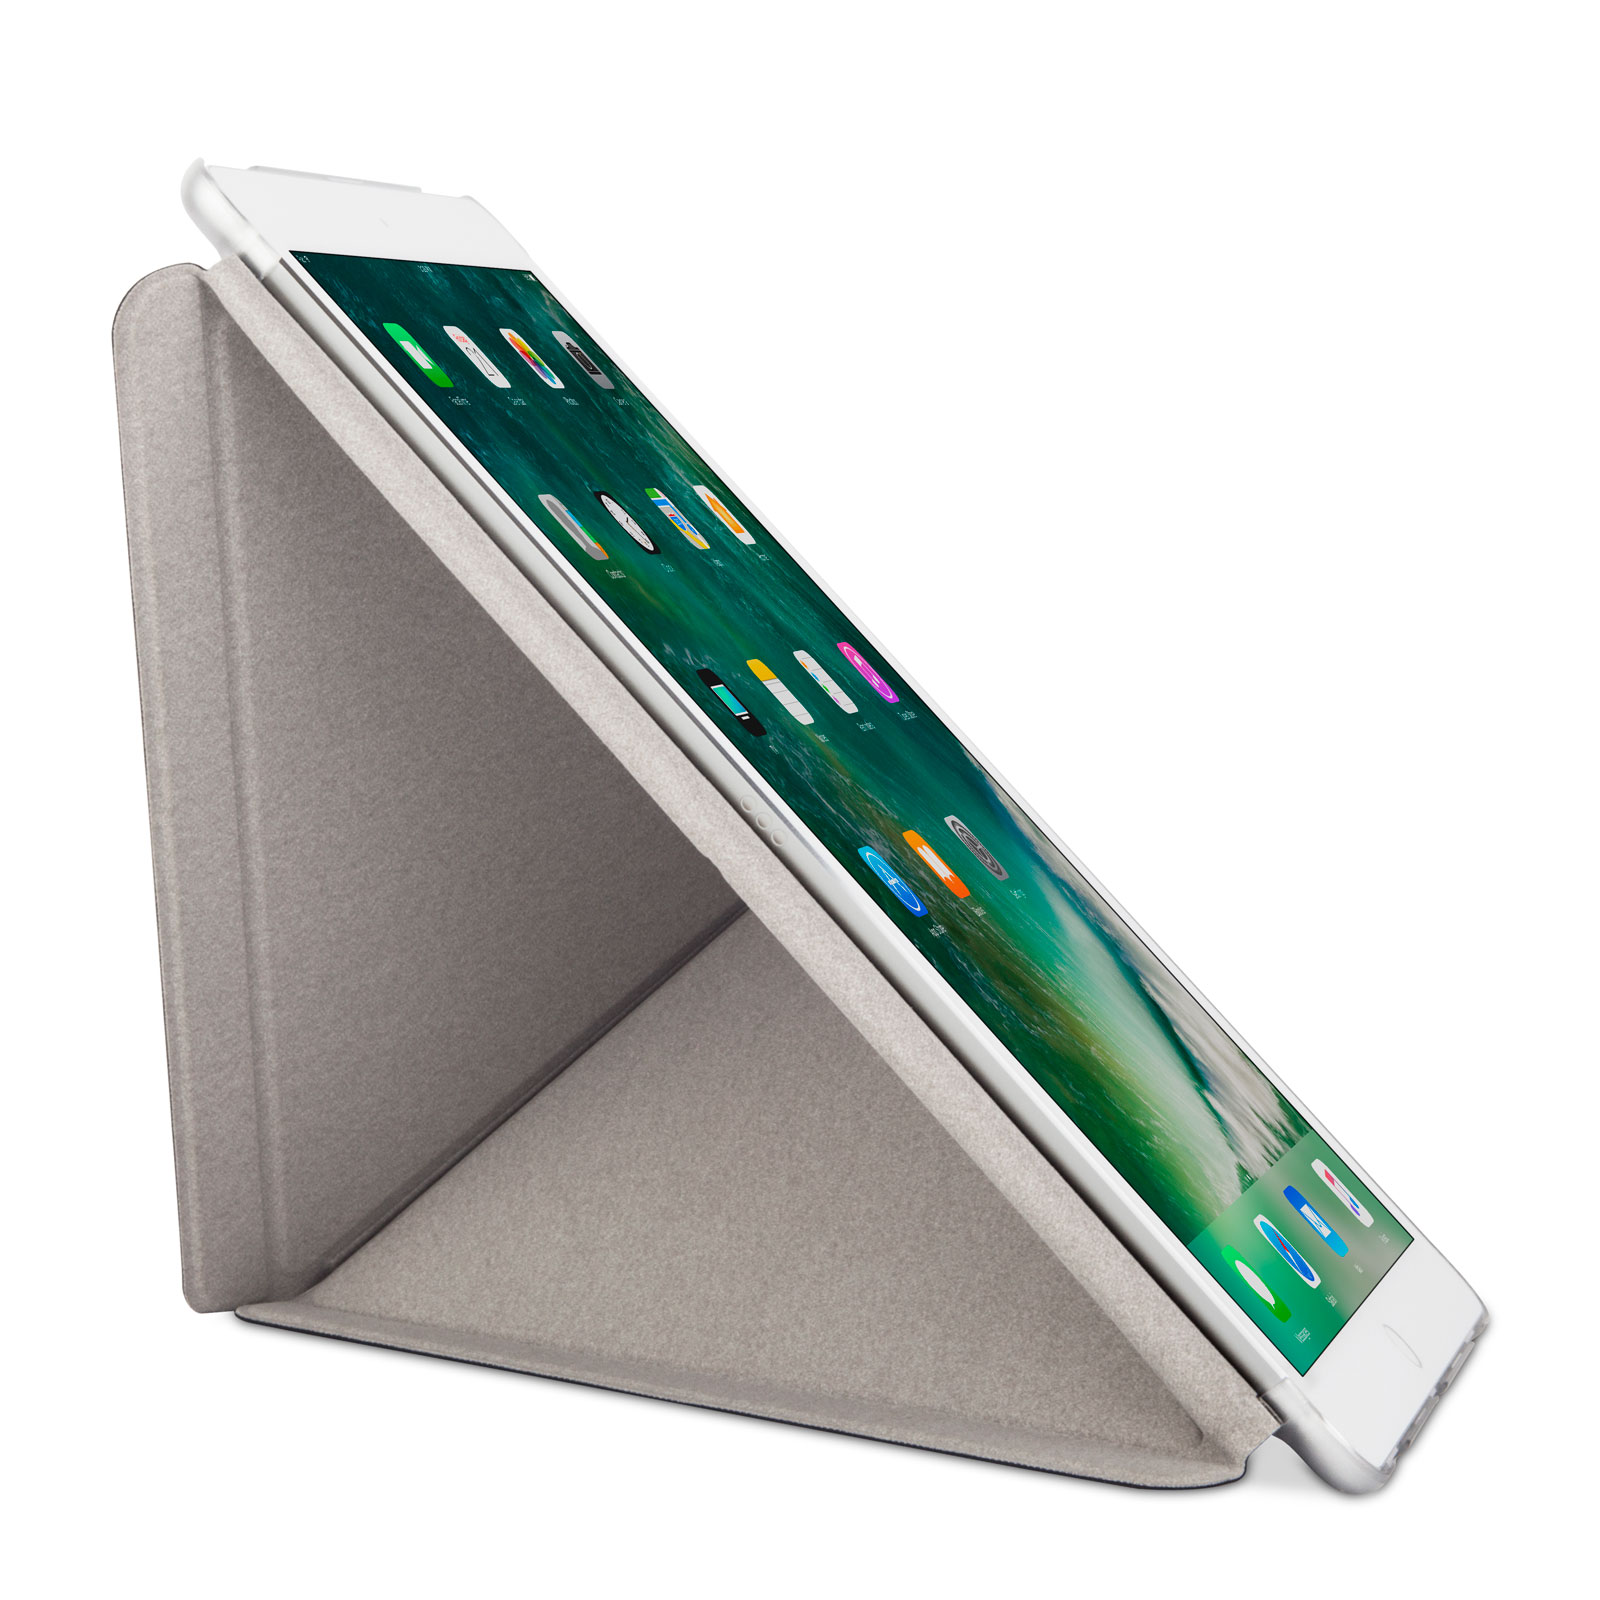 Versacover For Ipad Pro 129 Inch 2nd Gen